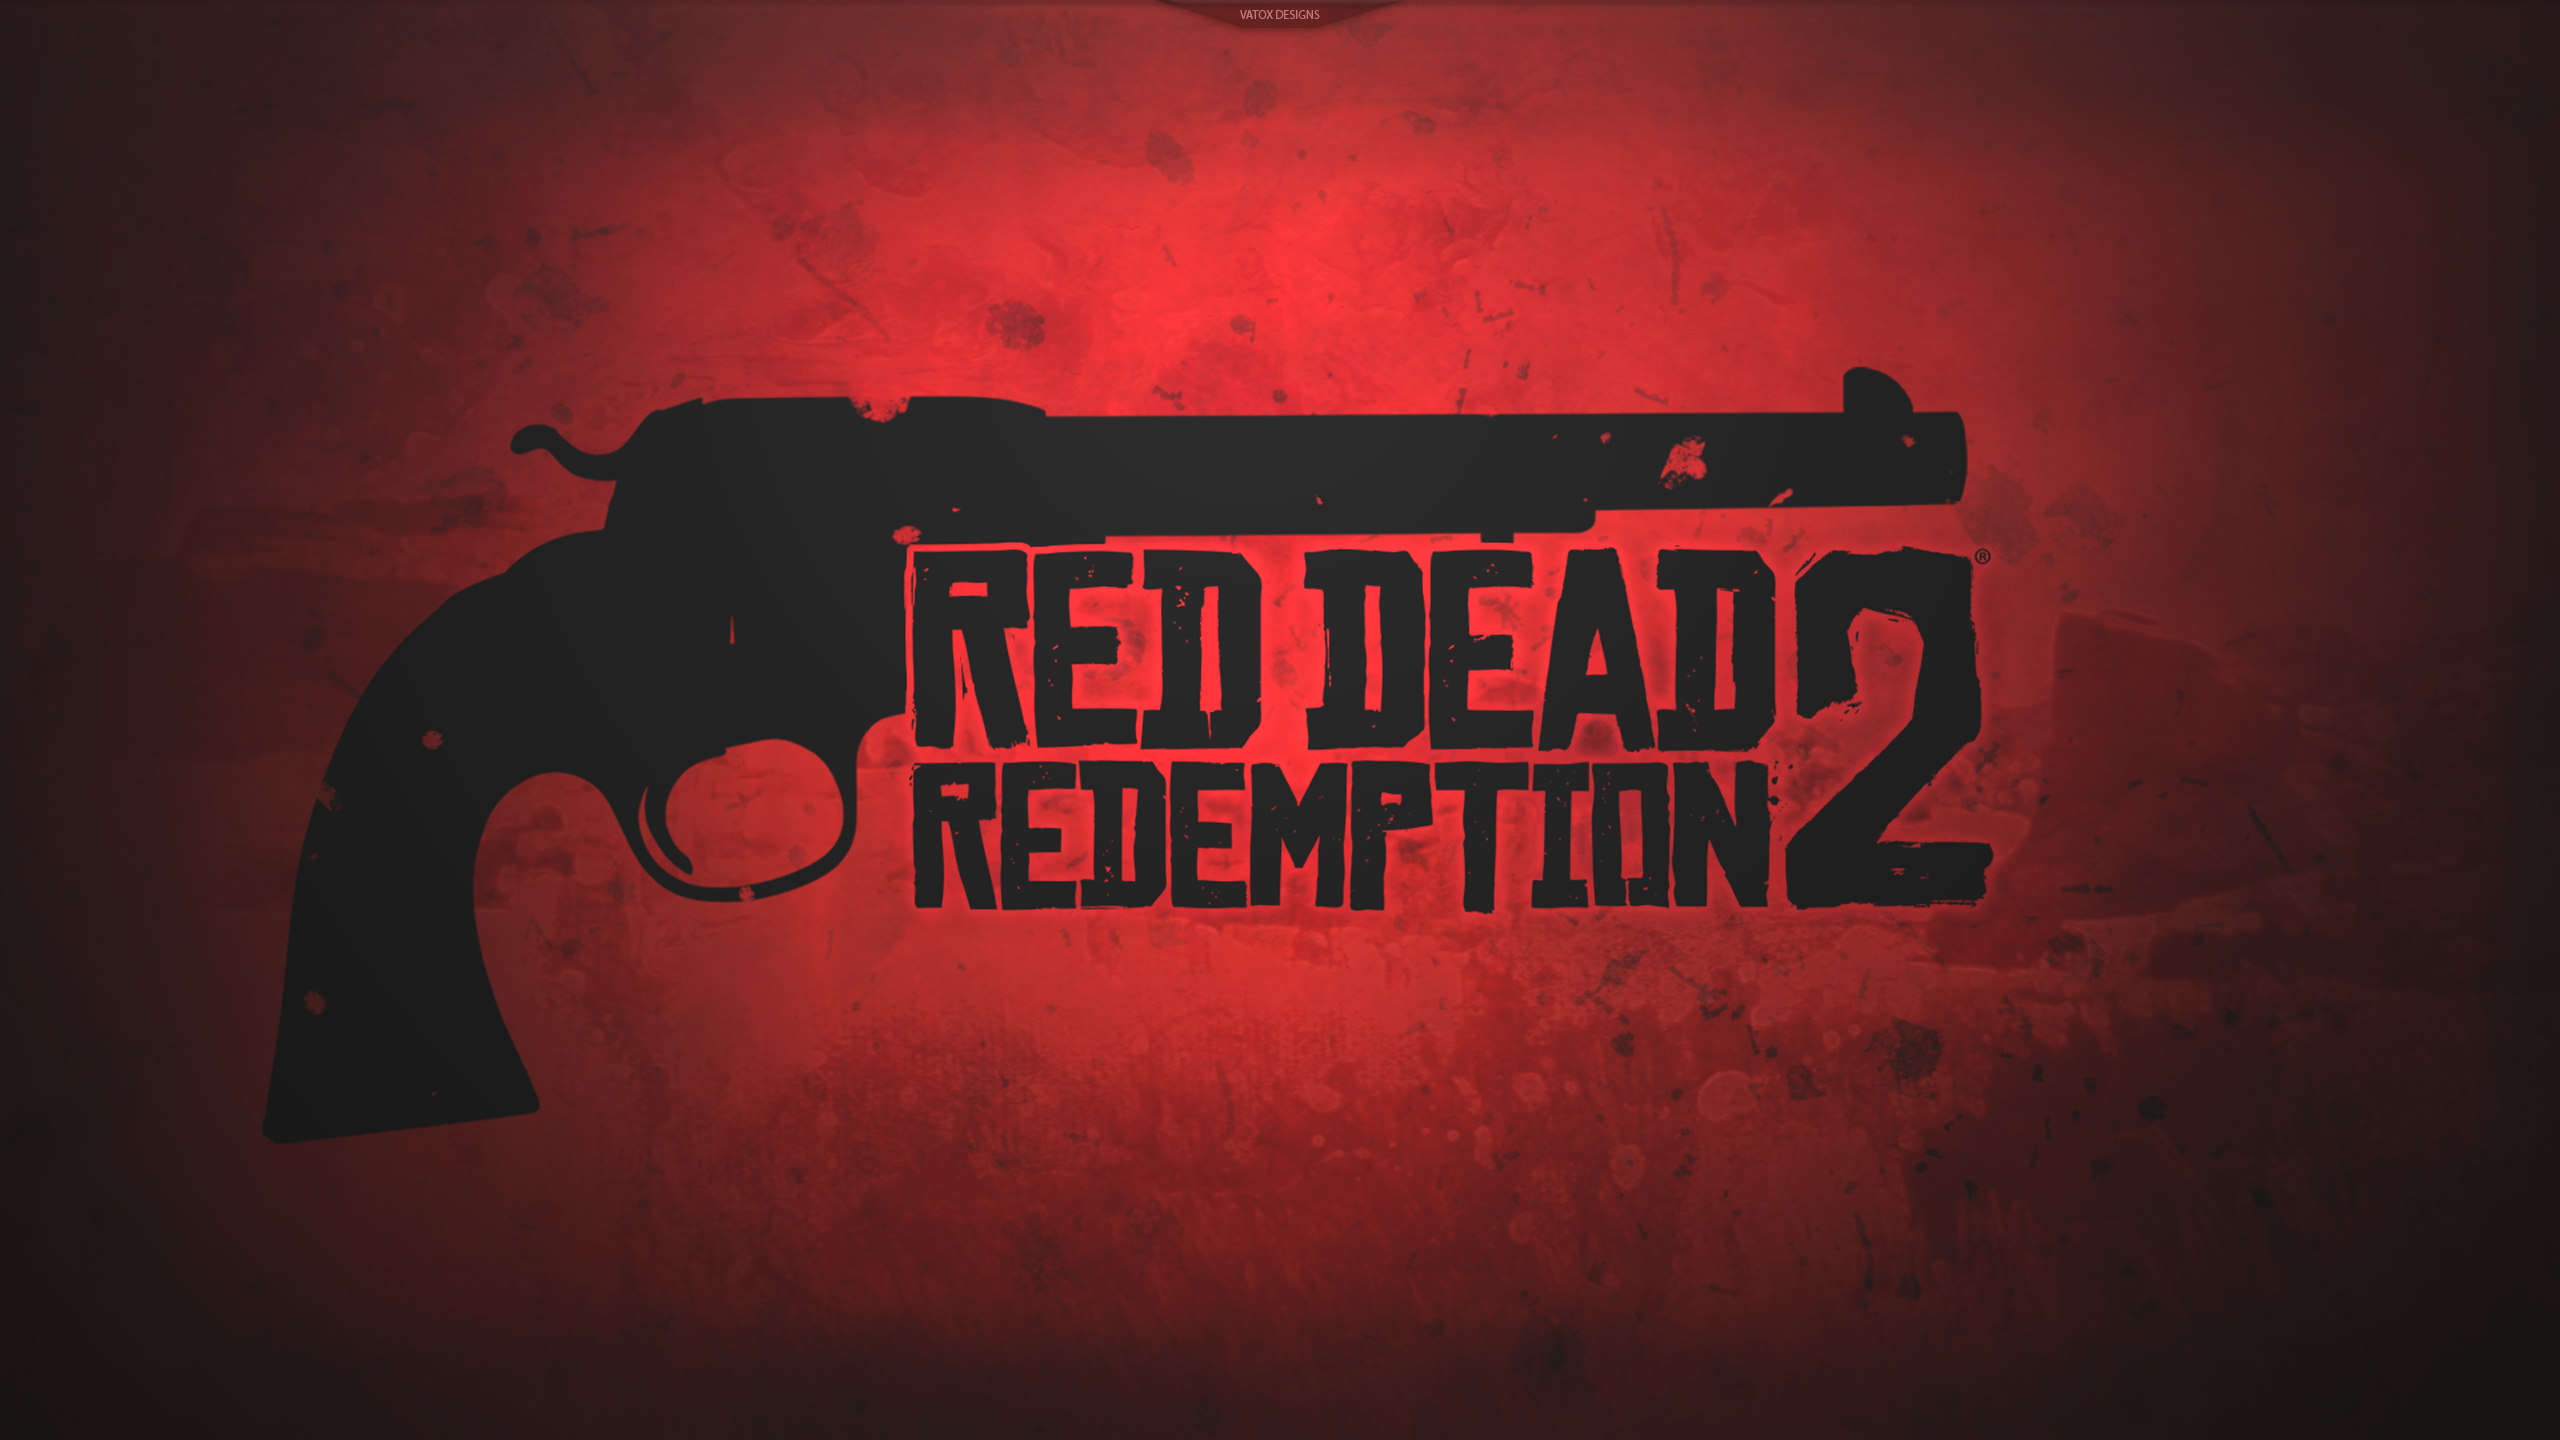 208 Red Dead Redemption 2 HD Wallpapers Background Images 2560x1440